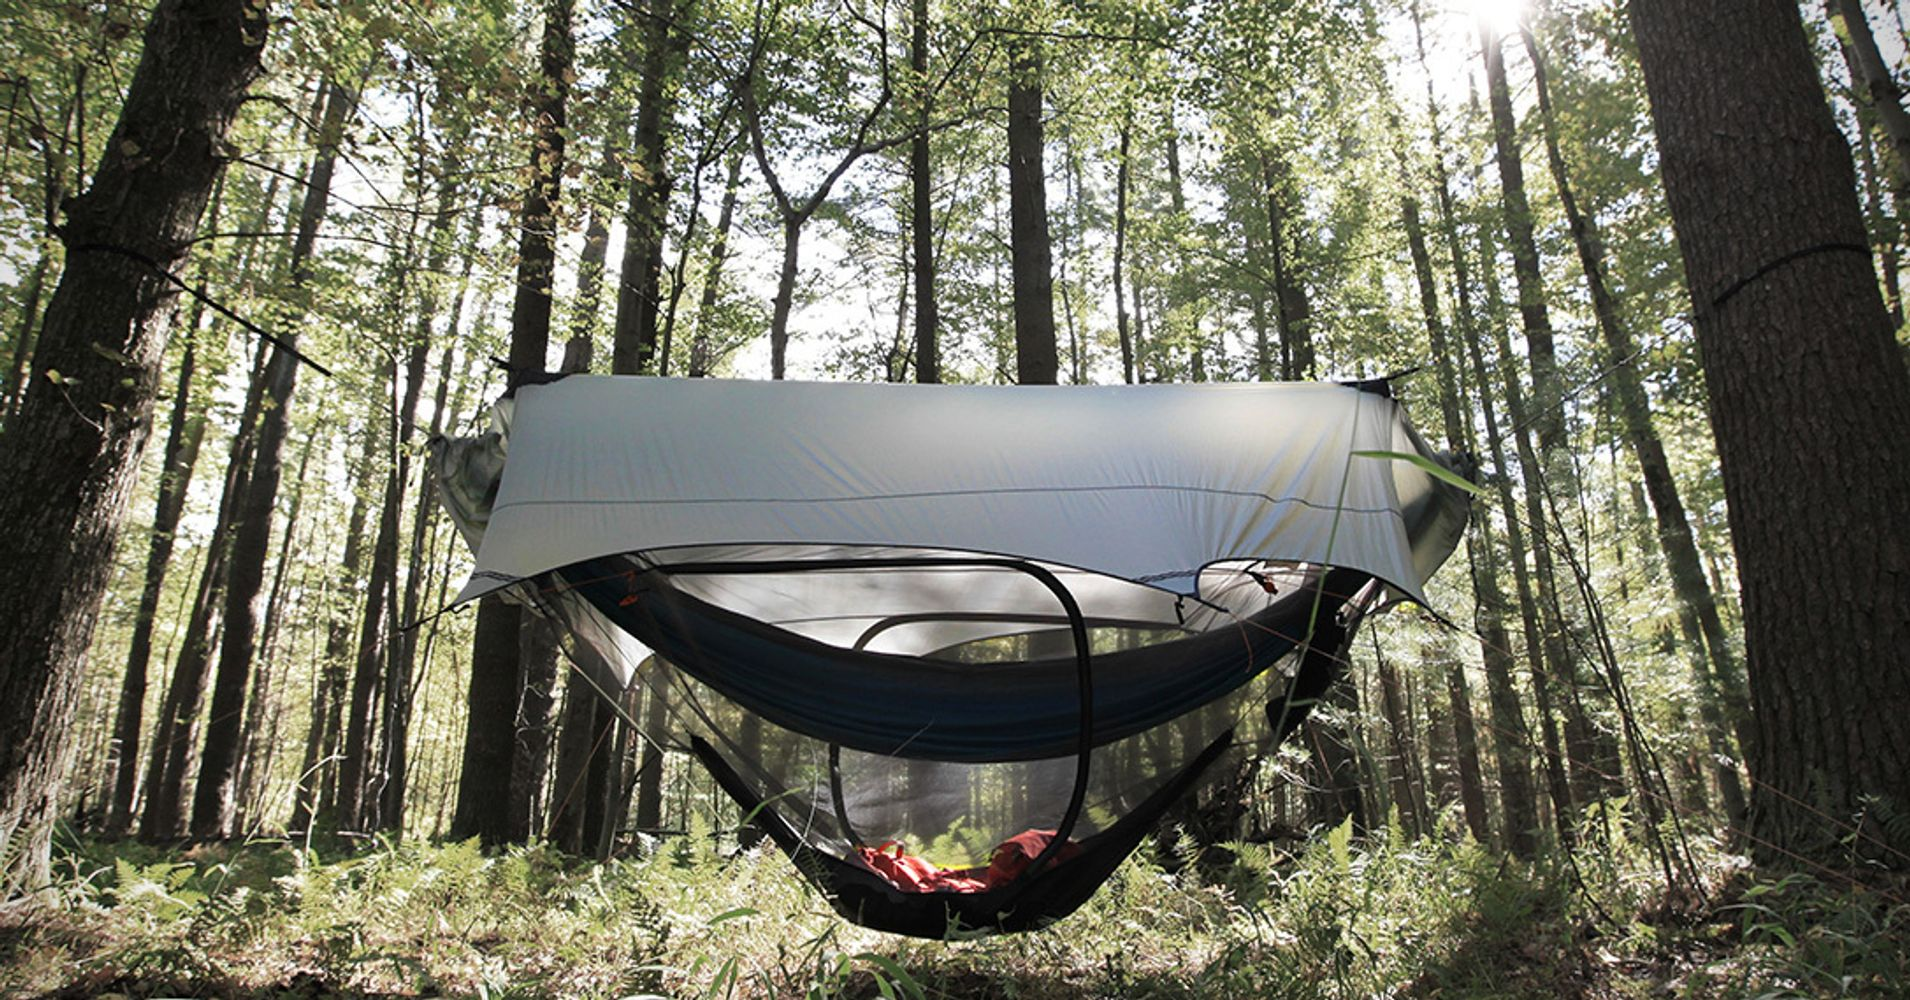 Hammock Camping Equipment For Charity On Shark Tank